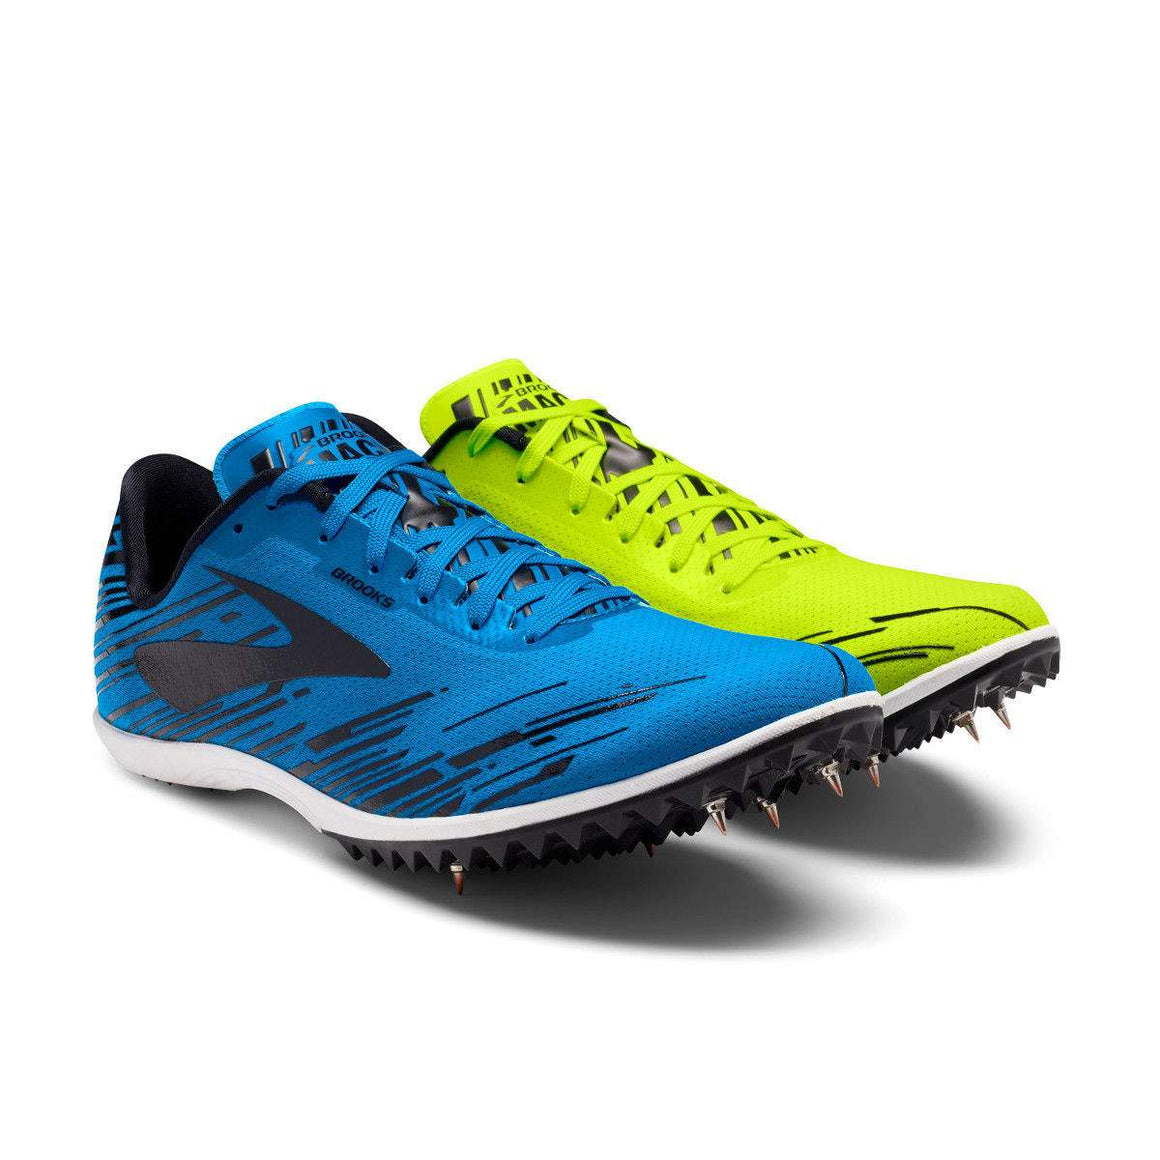 Brooks Men's Mach 18 Cross Country Spike